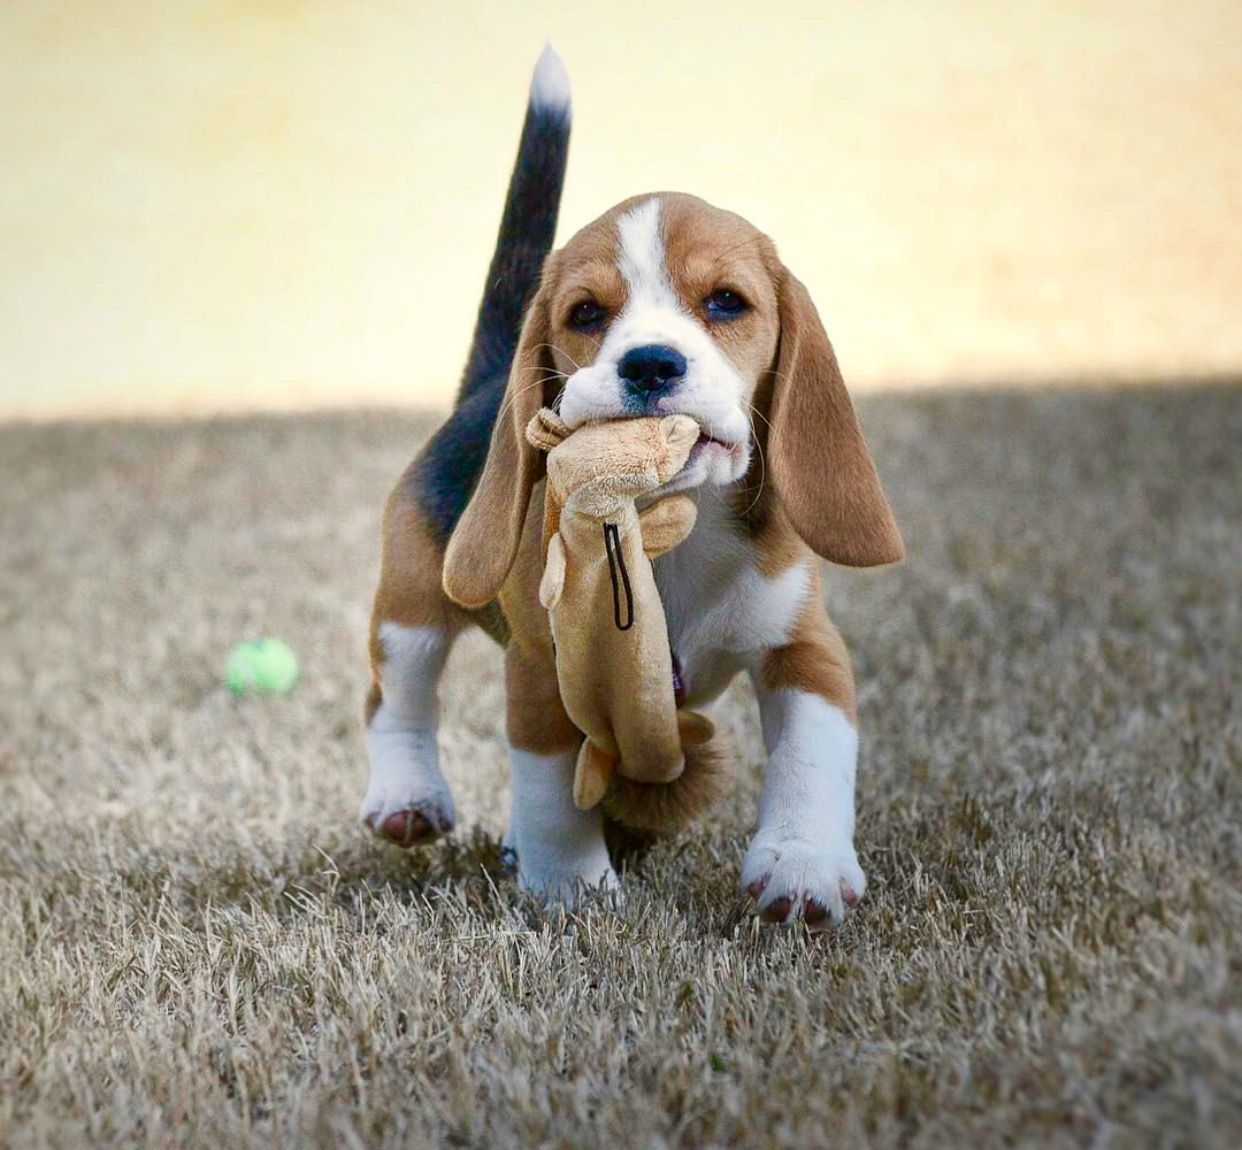 Beagle Friendly and Curious Beagle puppy, Puppies